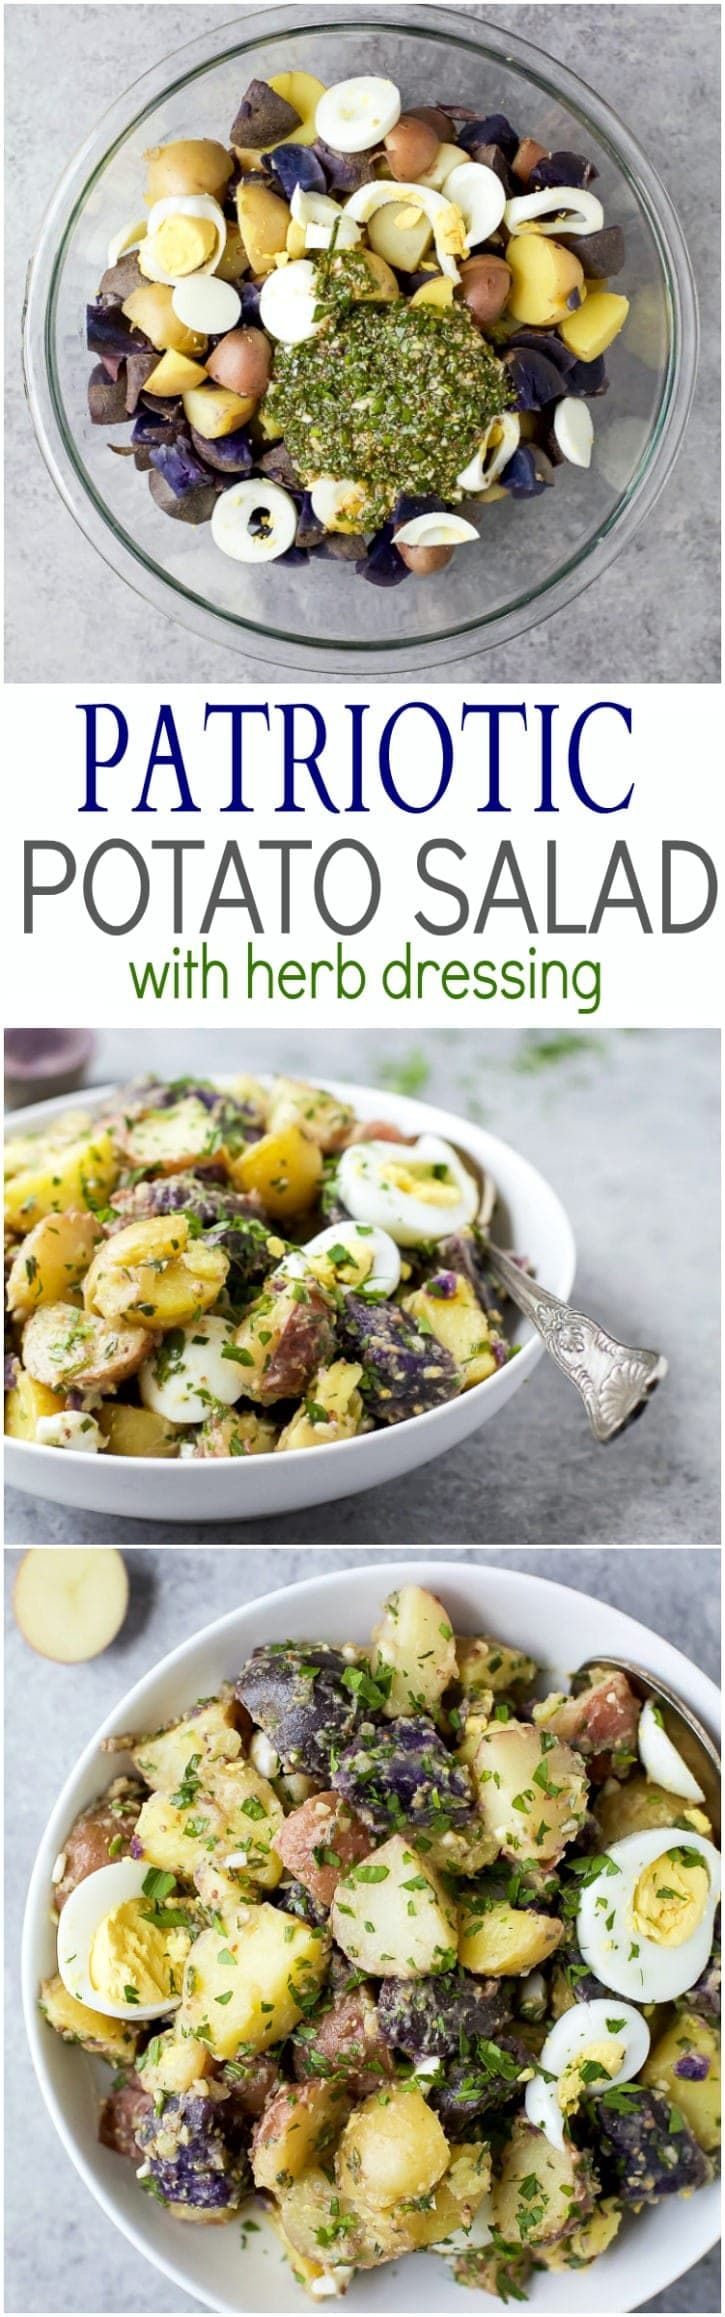 Patriotic Potato Salad with Herb Dressing Made with red, white & blue potatoes, this Patriotic Potato Salad is a delicious side dish. Covered with a homemade Herb Vinaigrette for amazing flavor!